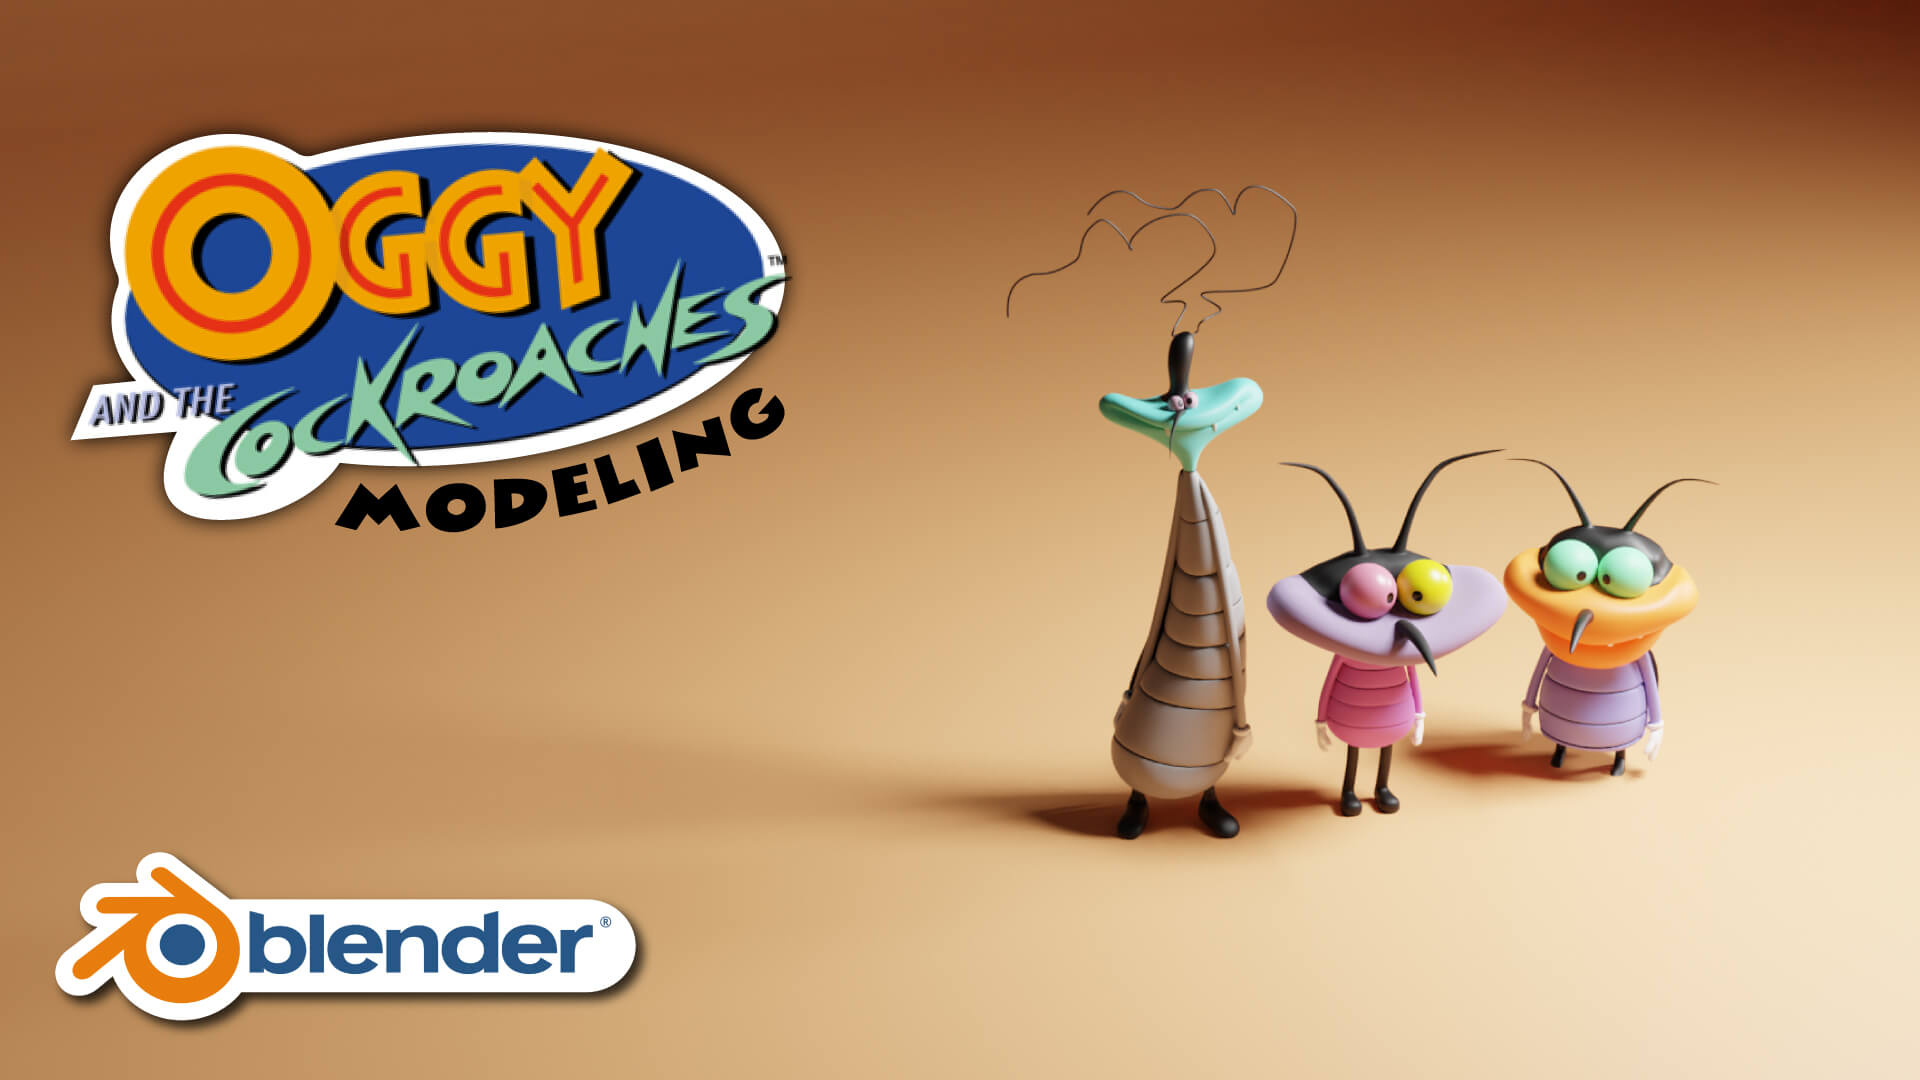 3D Oggy And The Cockroaches Blender Course Academy Modeling